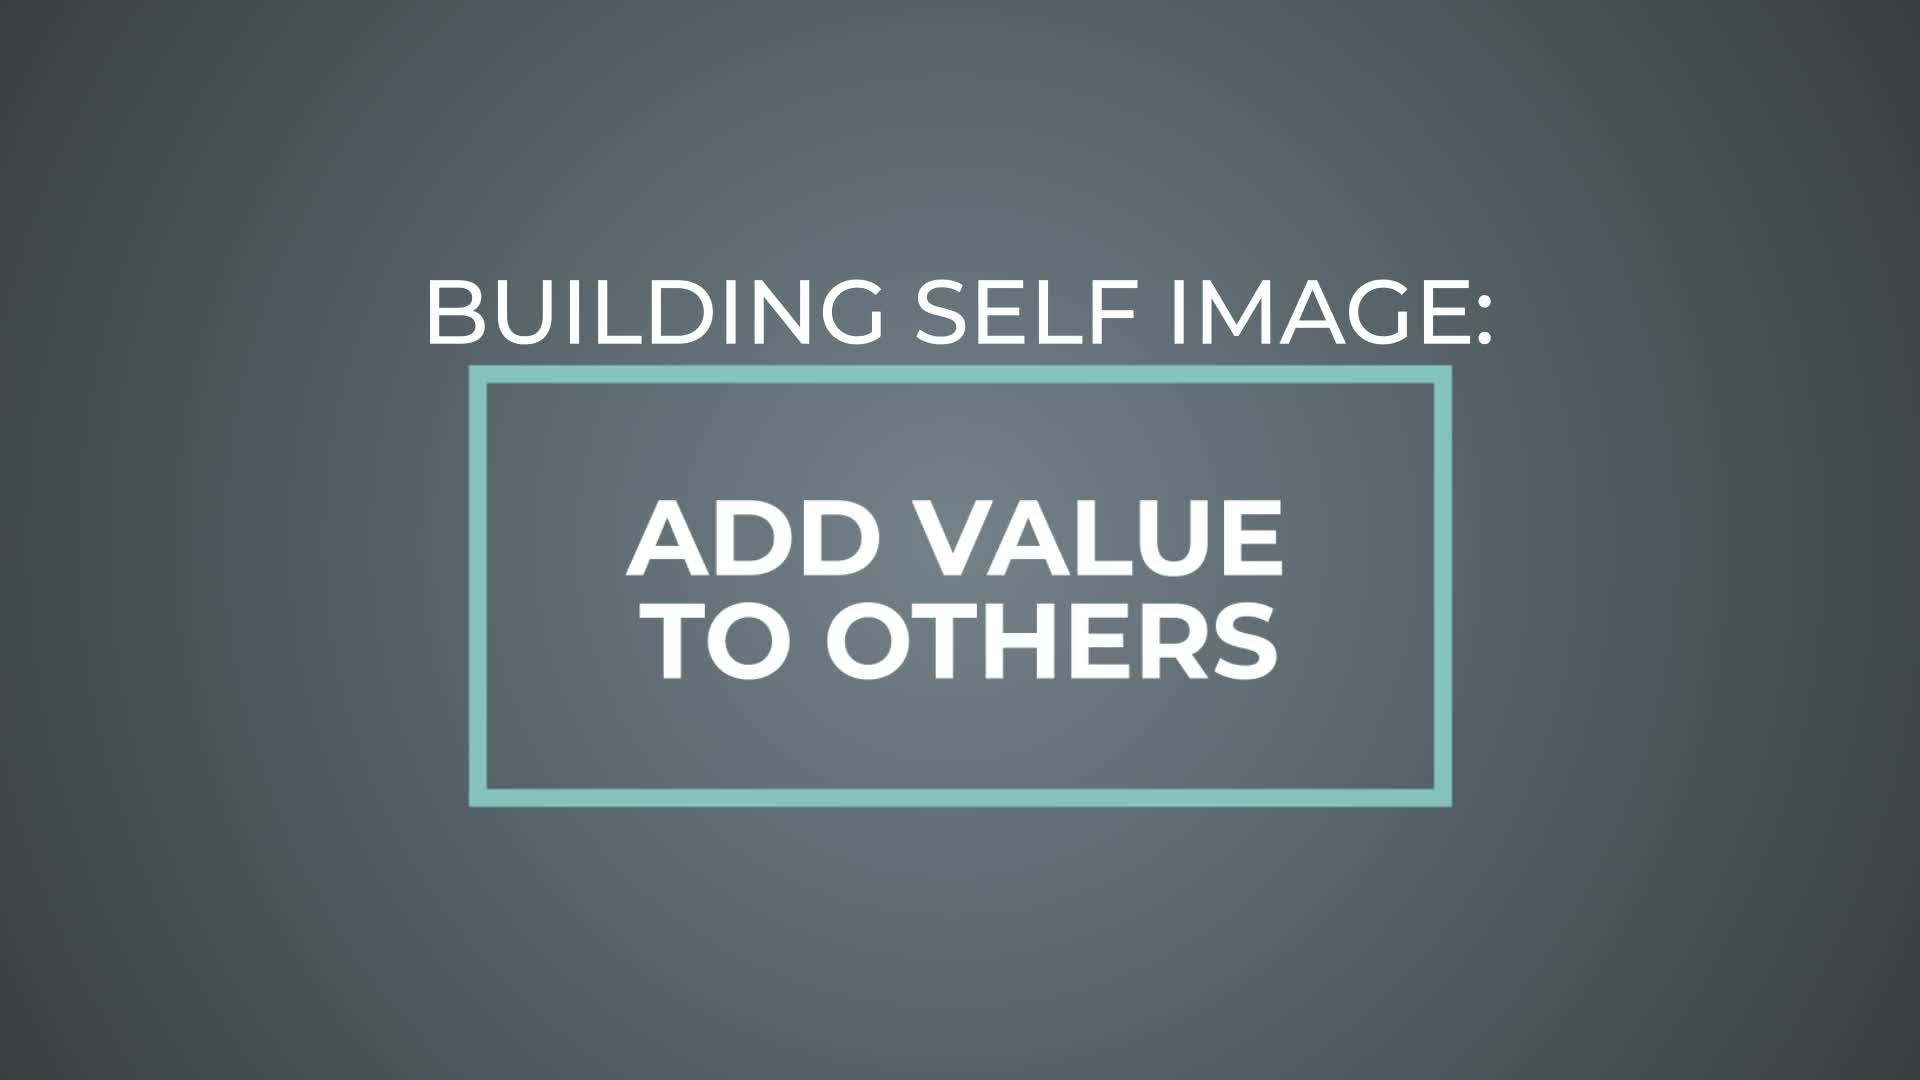 Building Self Image Add Value to Others